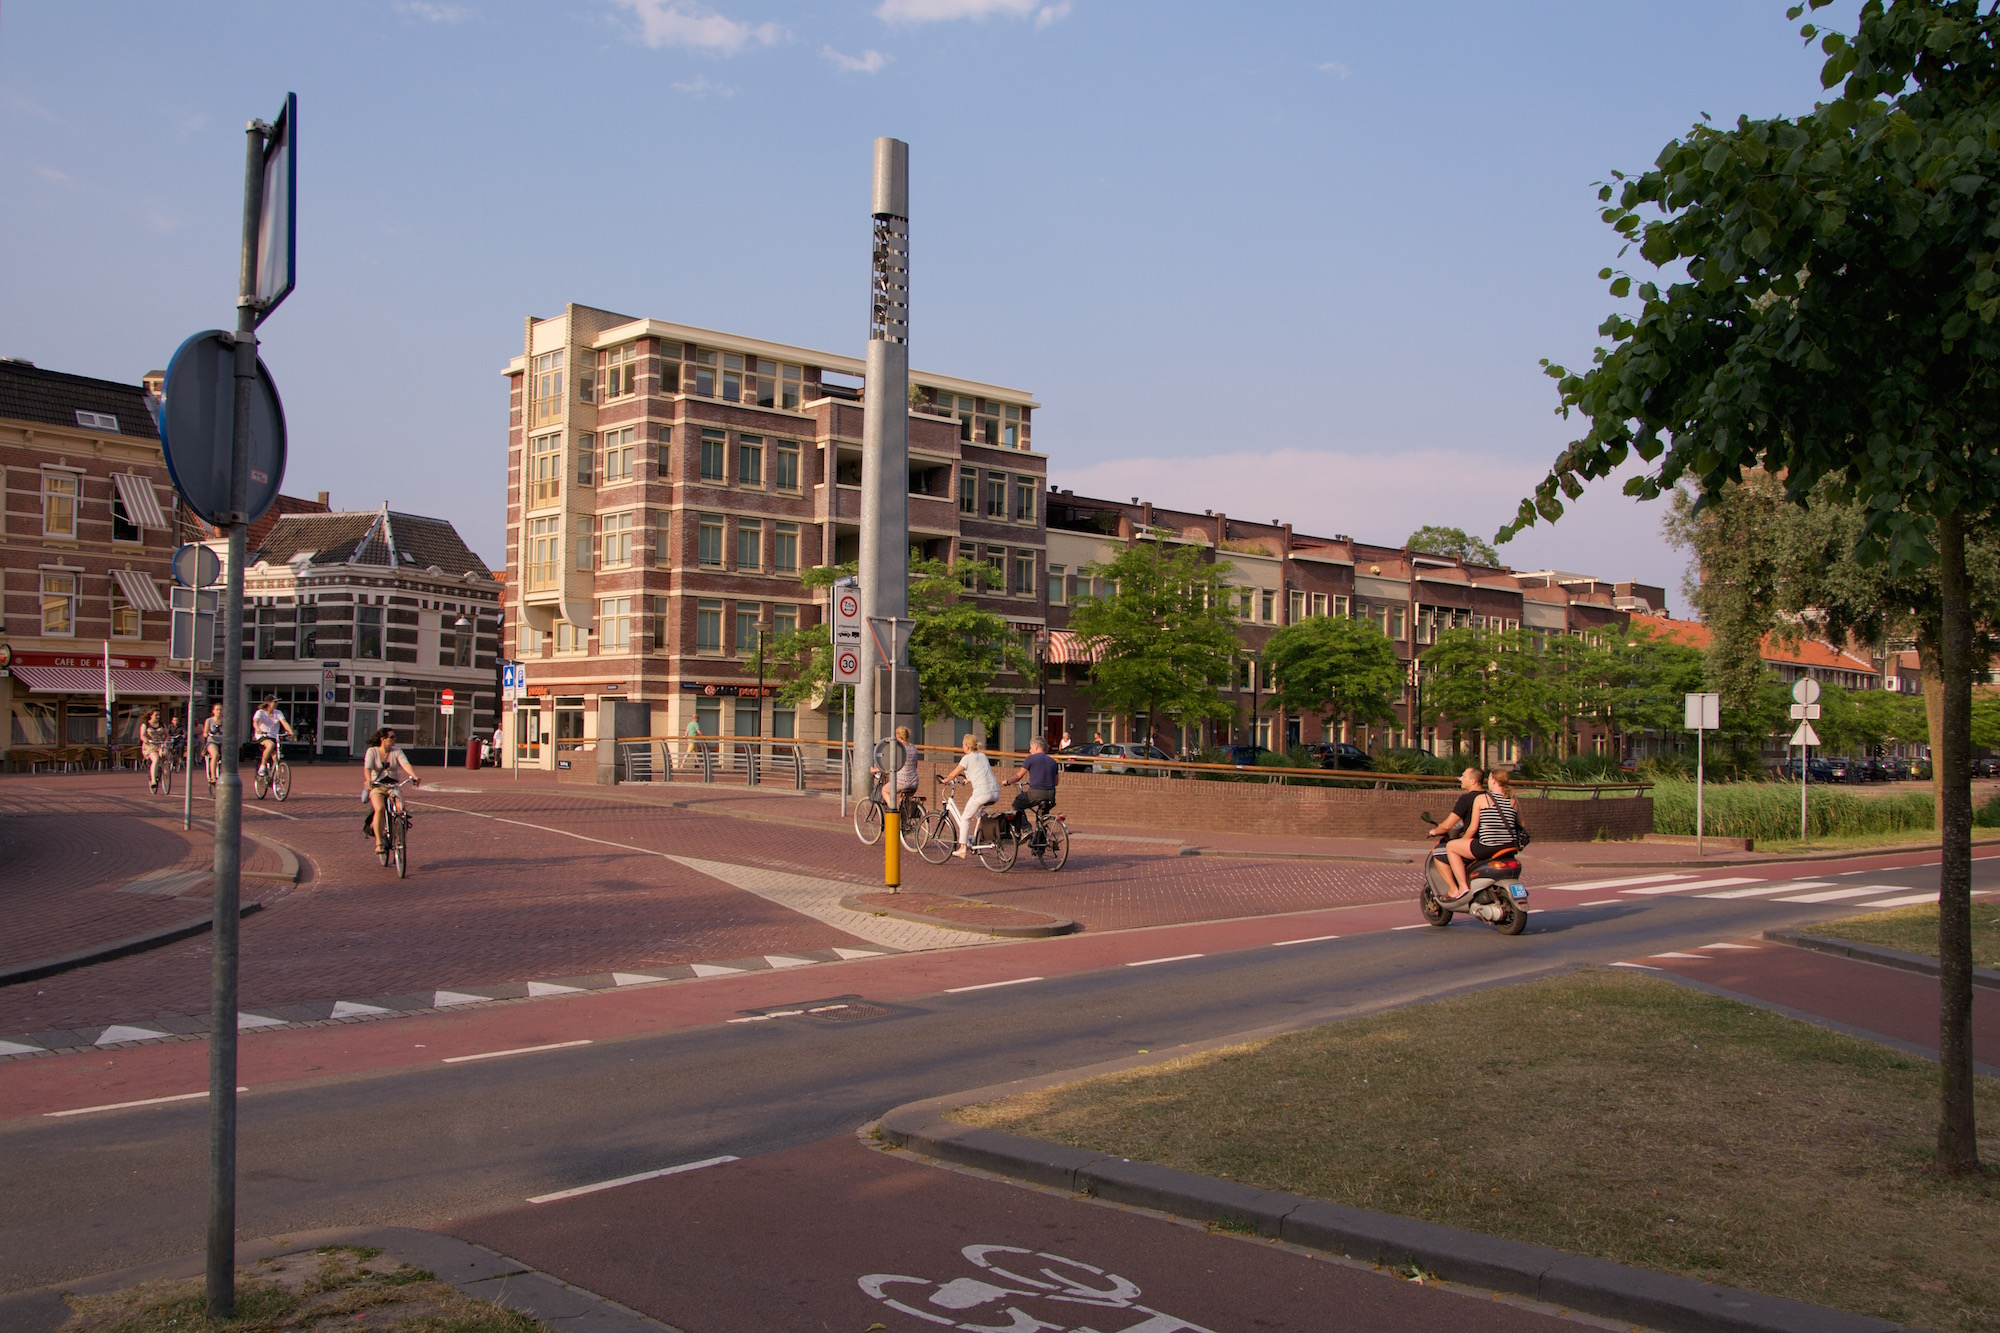 This shows cycle users at a entry point into the centre of Dordrecht.